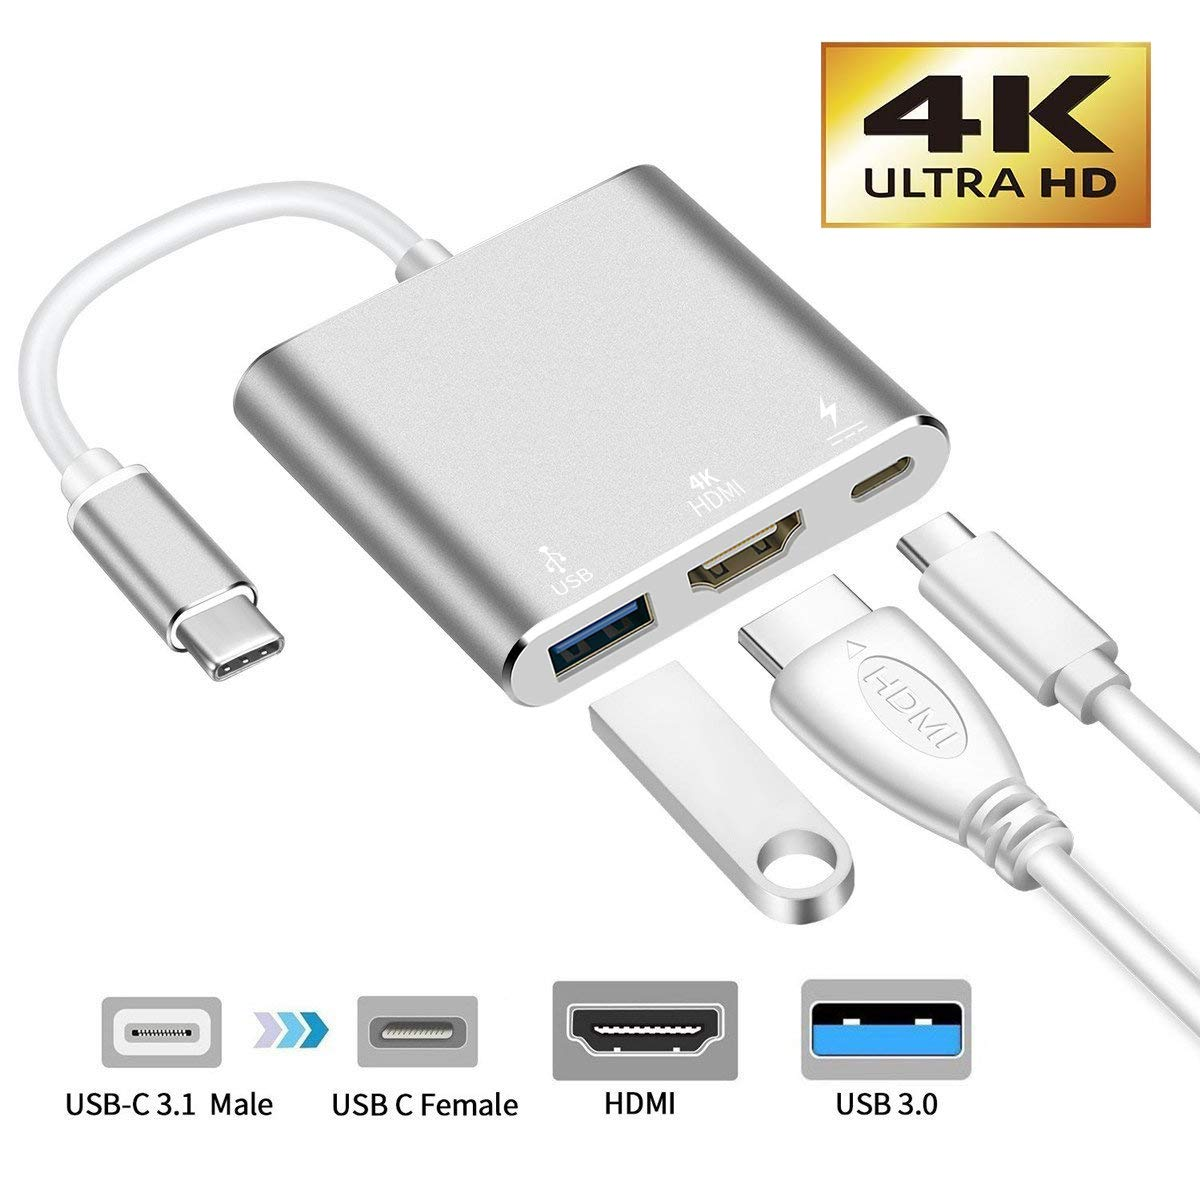 USB-C to HDMI Adapter,321OU USB 3.1 Type C to HDMI 4K Multiport AV Converter with USB 3.0 Port and USB C Charging Port compatible MacBook/Chromebook Pixel/Dell XPS13/Samsung Galaxy s8/s8 Plus (Silver) by 321OU